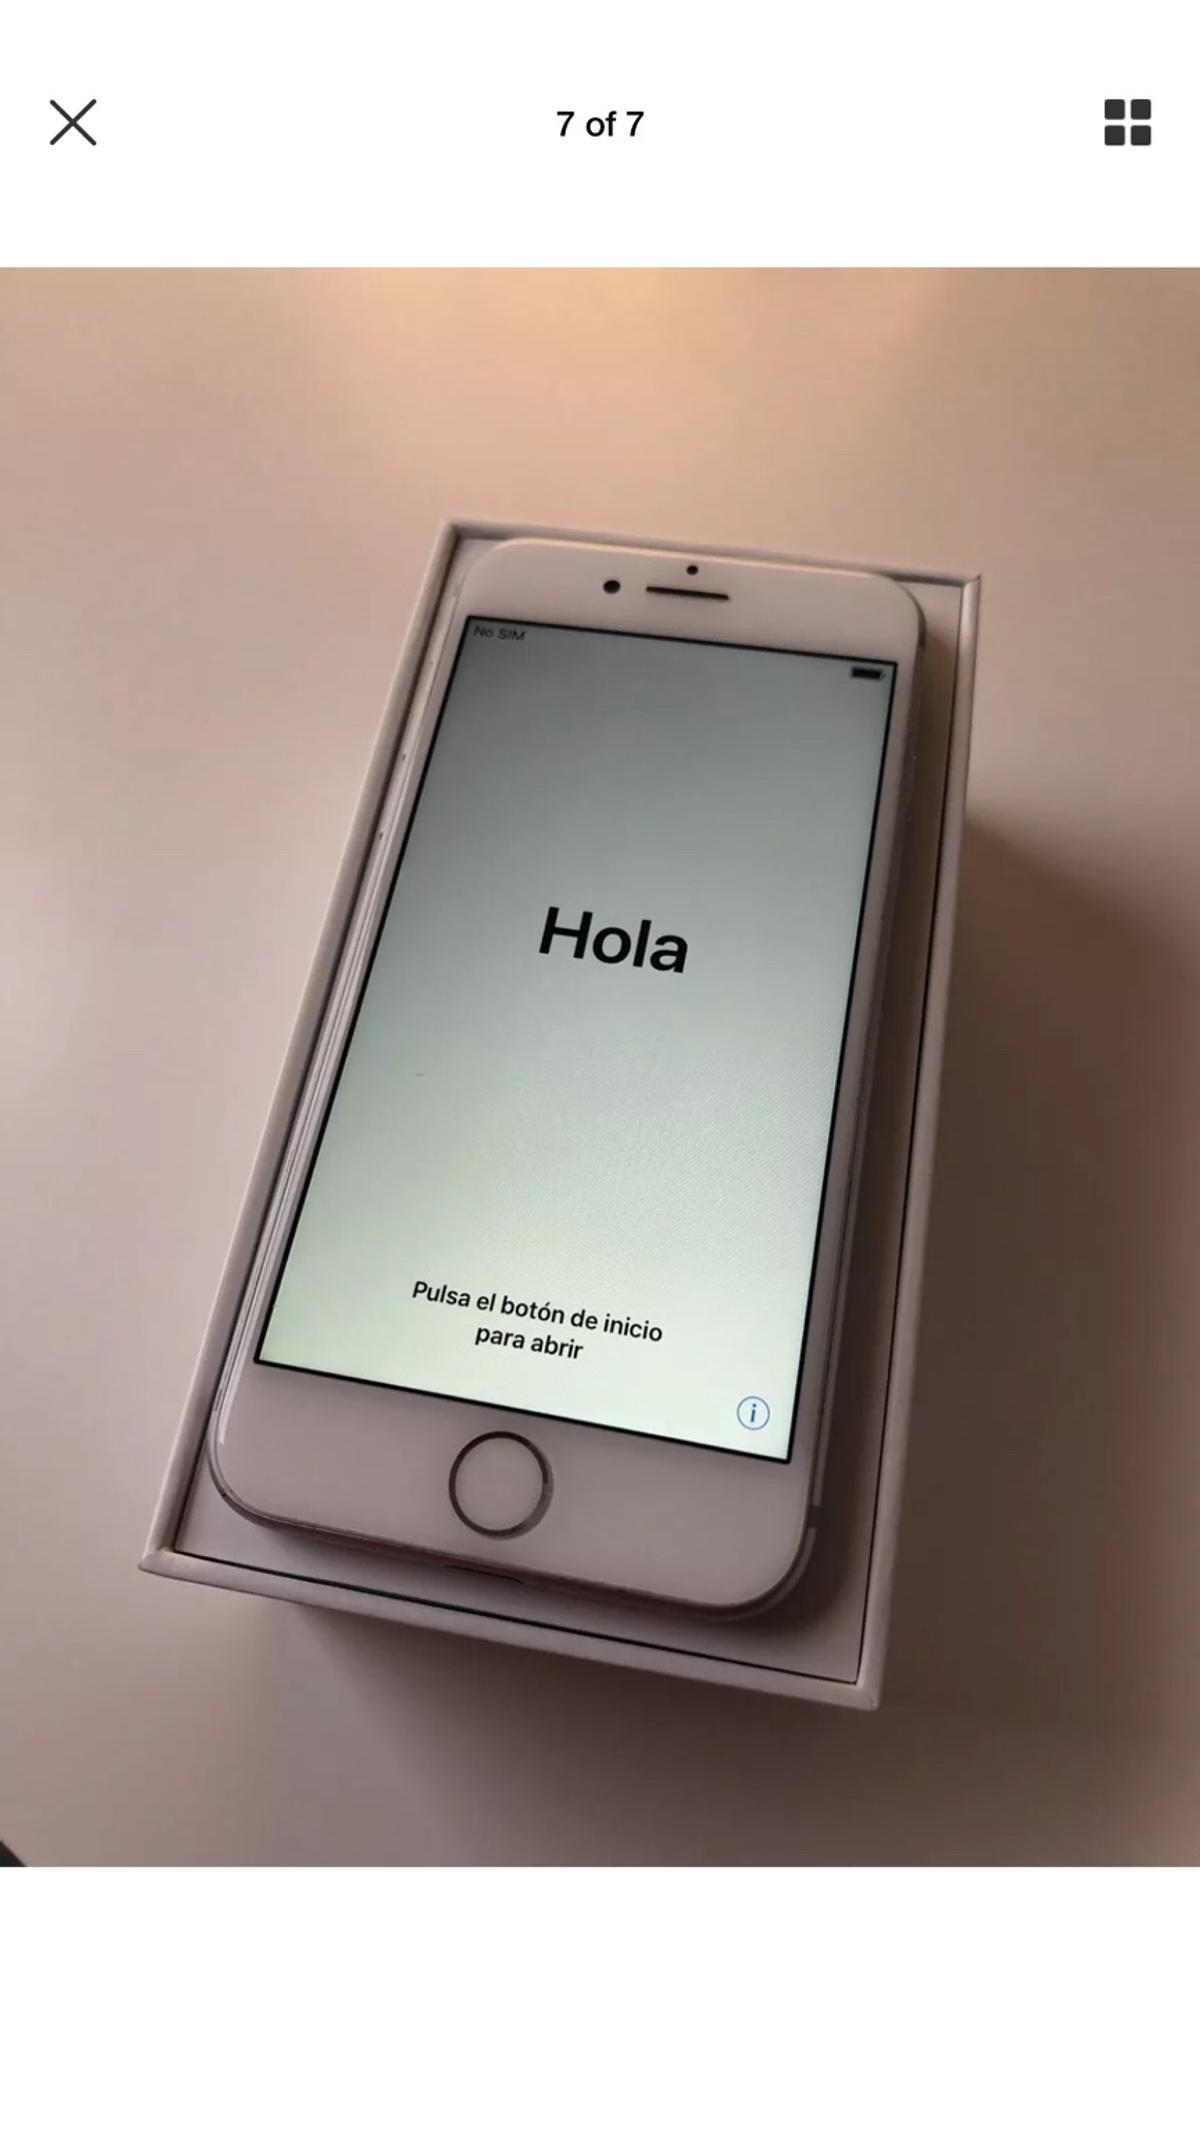 Apple Iphone 7 32gb Vodafone In Cv6 Coventry For 240 00 For Sale Shpock